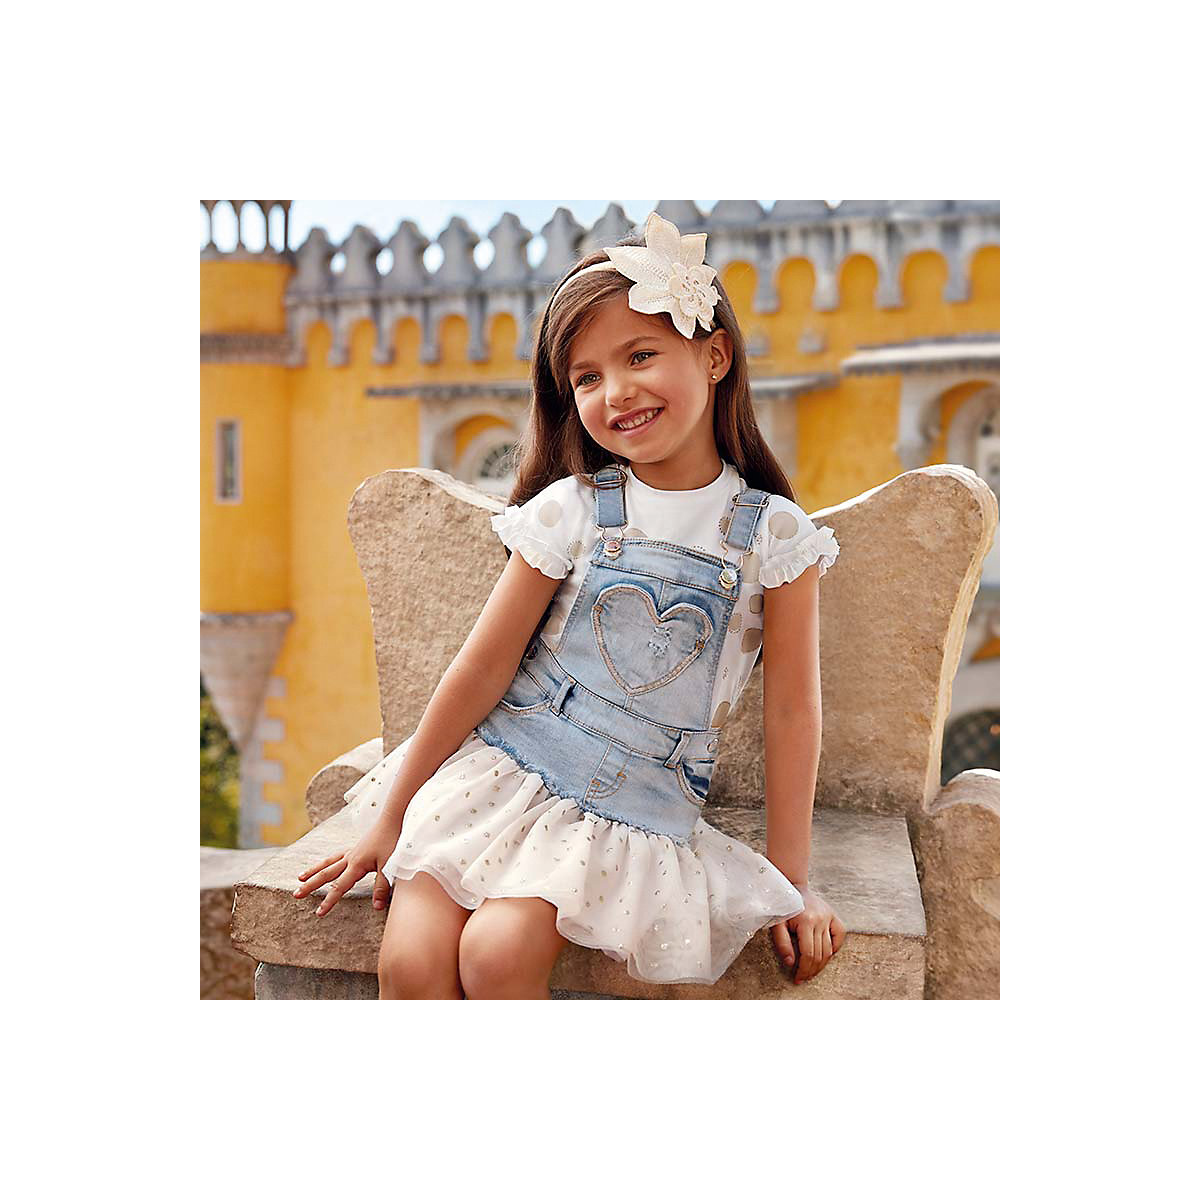 Dresses Mayoral 10690807 Casual dress with short sleeves sundress for girls family matching outfits short sleeves white red kids girls paternity skirts mommy and daughter lace dresses mother